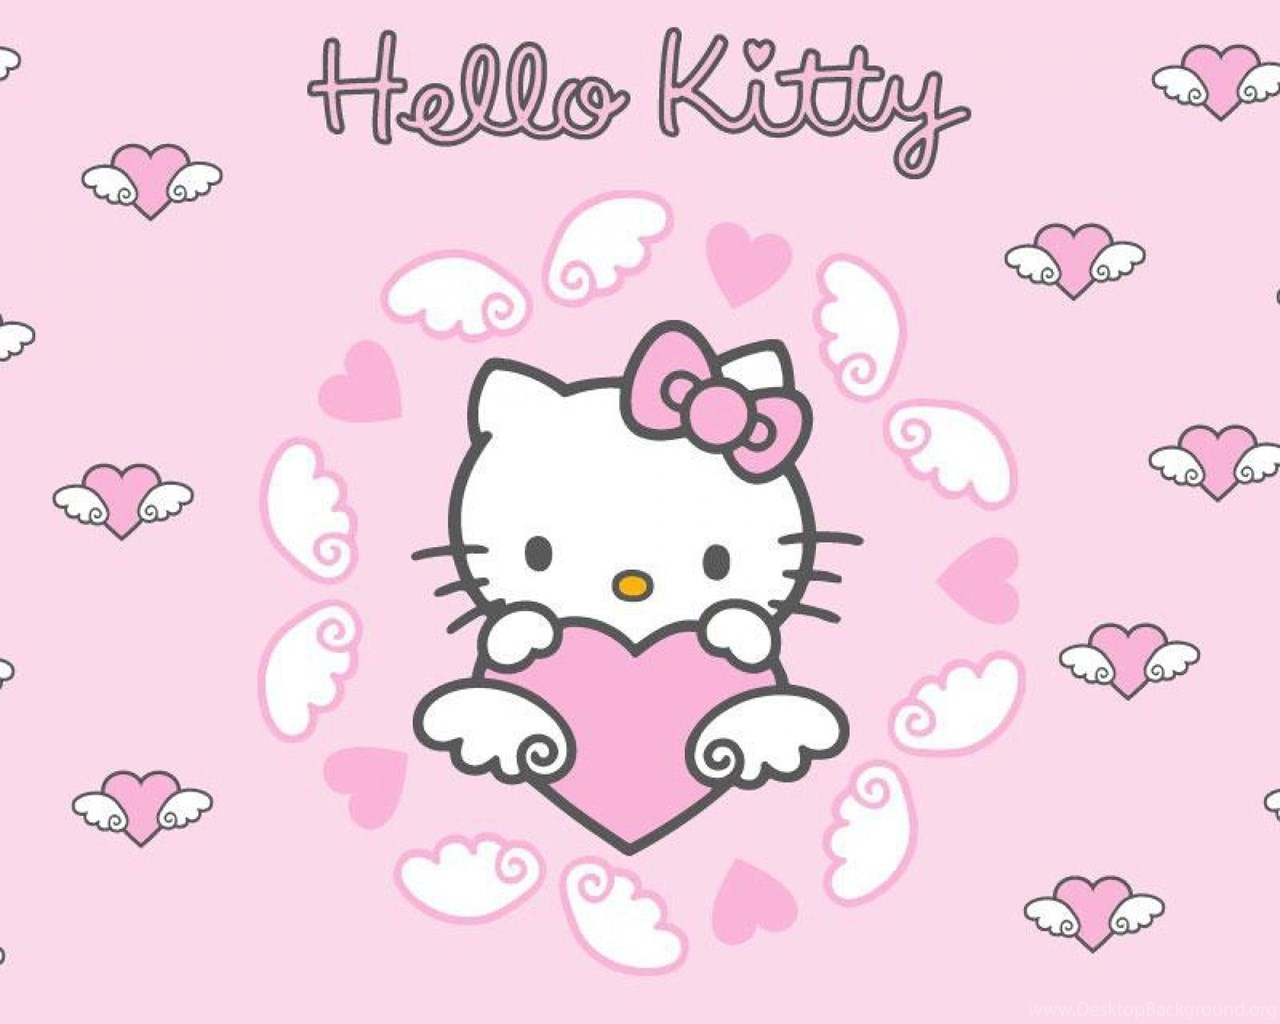 Most Inspiring Wallpaper Hello Kitty Ipad Air - 361483_photos-hello-kitty-with-bow-cute-wallpapers_2560x1600_h  Pictures_667915.jpg